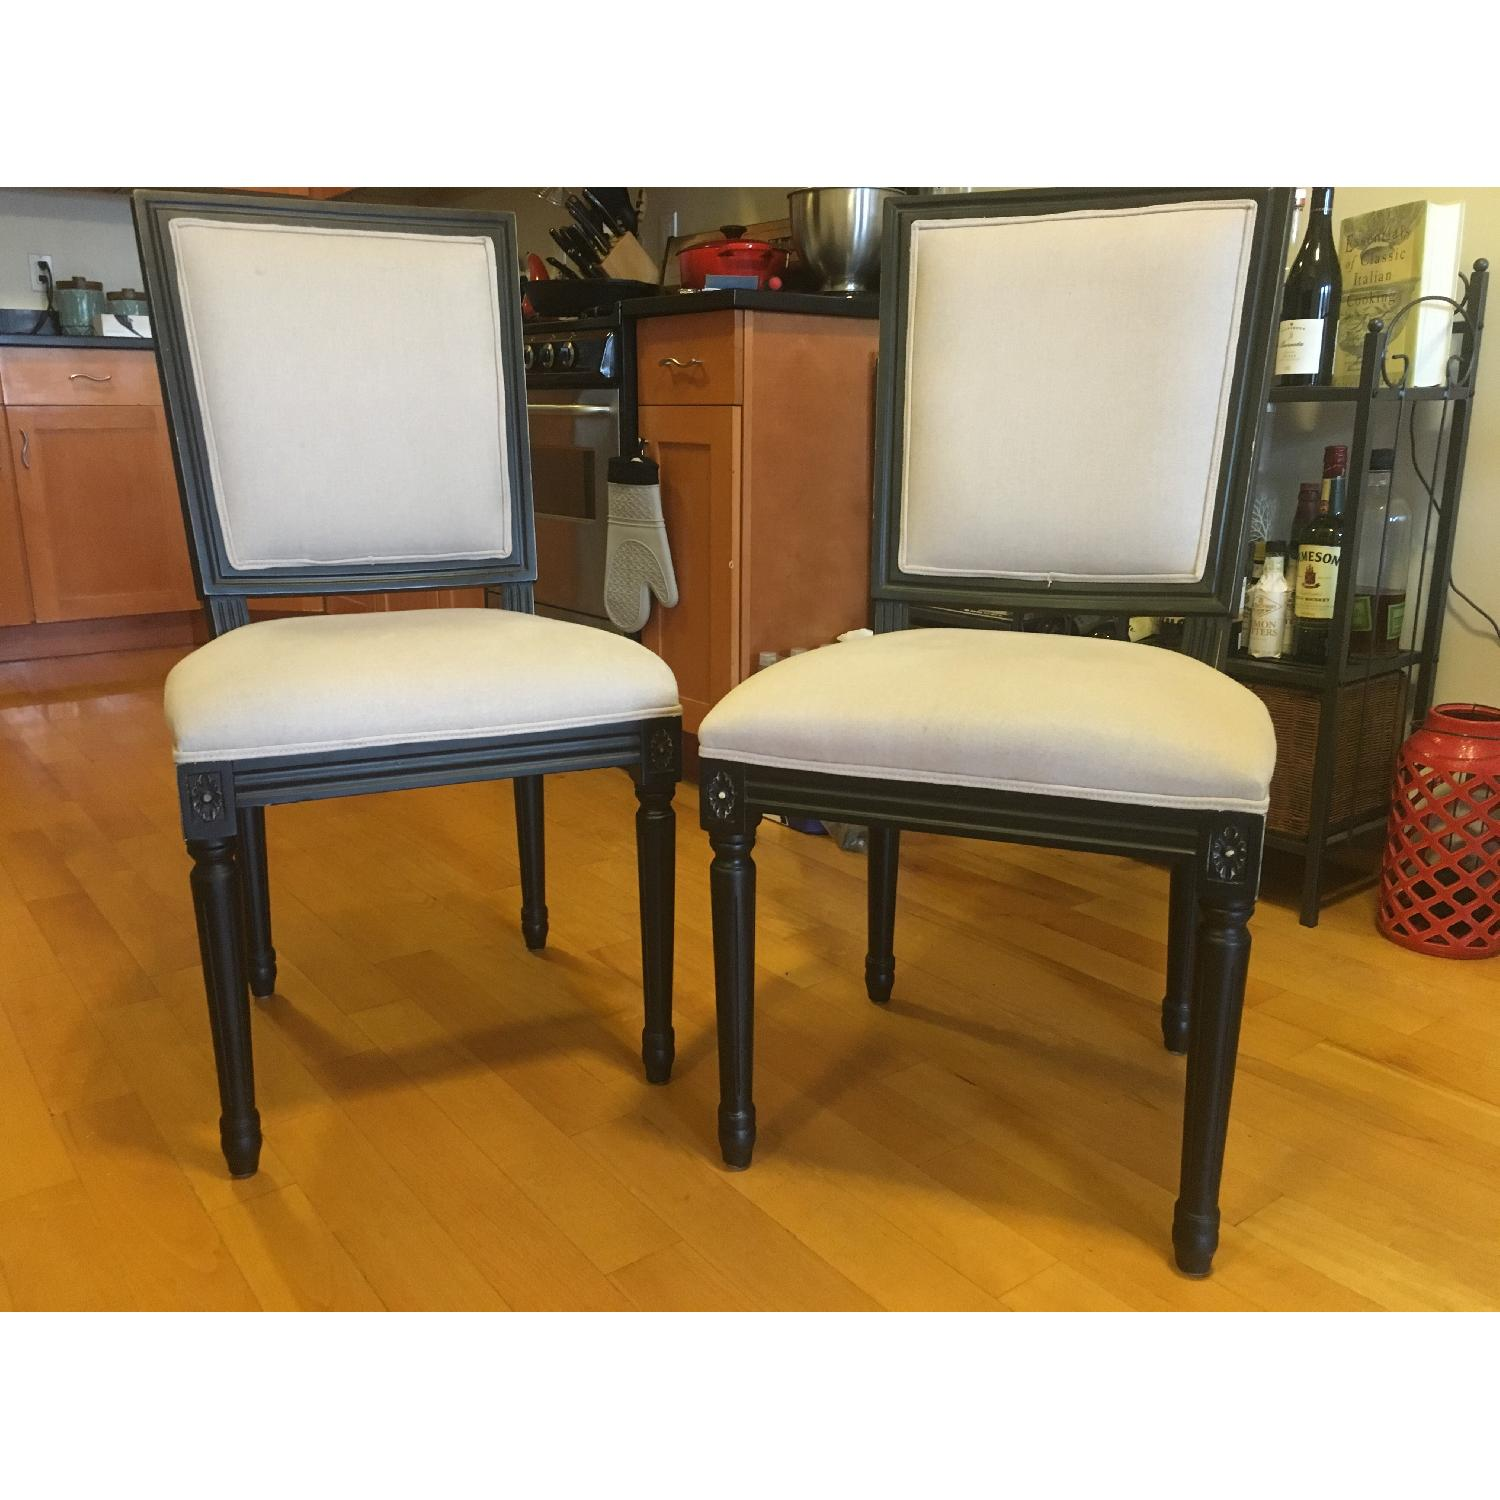 Safavieh Dining Chairs in Black & Gray - image-6